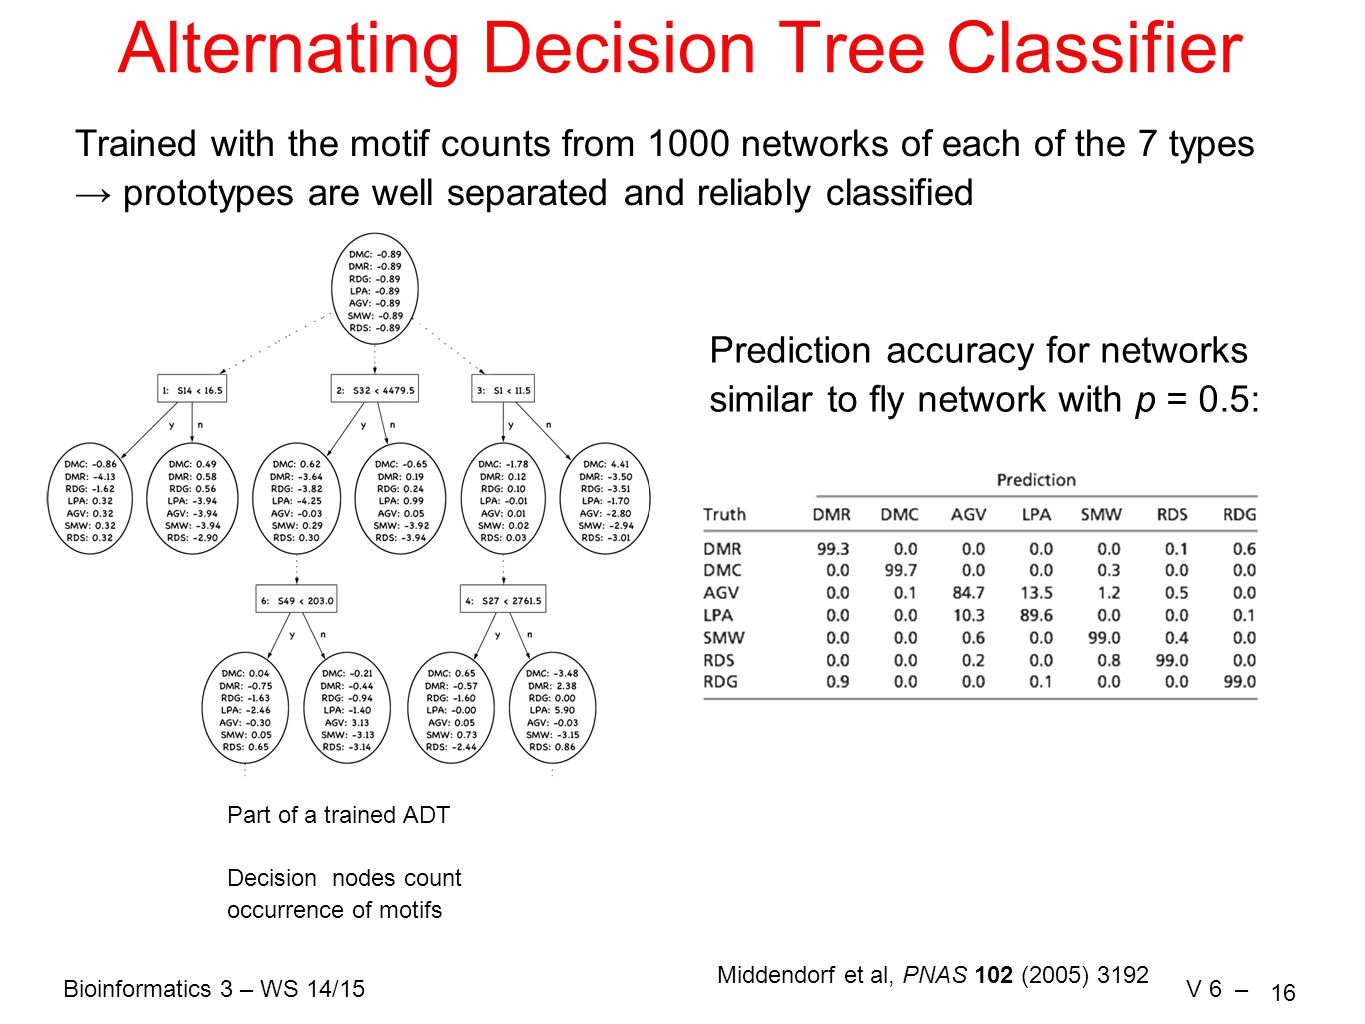 Bioinformatics 3 – WS 14/15V 6 – 16 Alternating Decision Tree Classifier Trained with the motif counts from 1000 networks of each of the 7 types → prototypes are well separated and reliably classified Prediction accuracy for networks similar to fly network with p = 0.5: Part of a trained ADT Decision nodes count occurrence of motifs Middendorf et al, PNAS 102 (2005) 3192